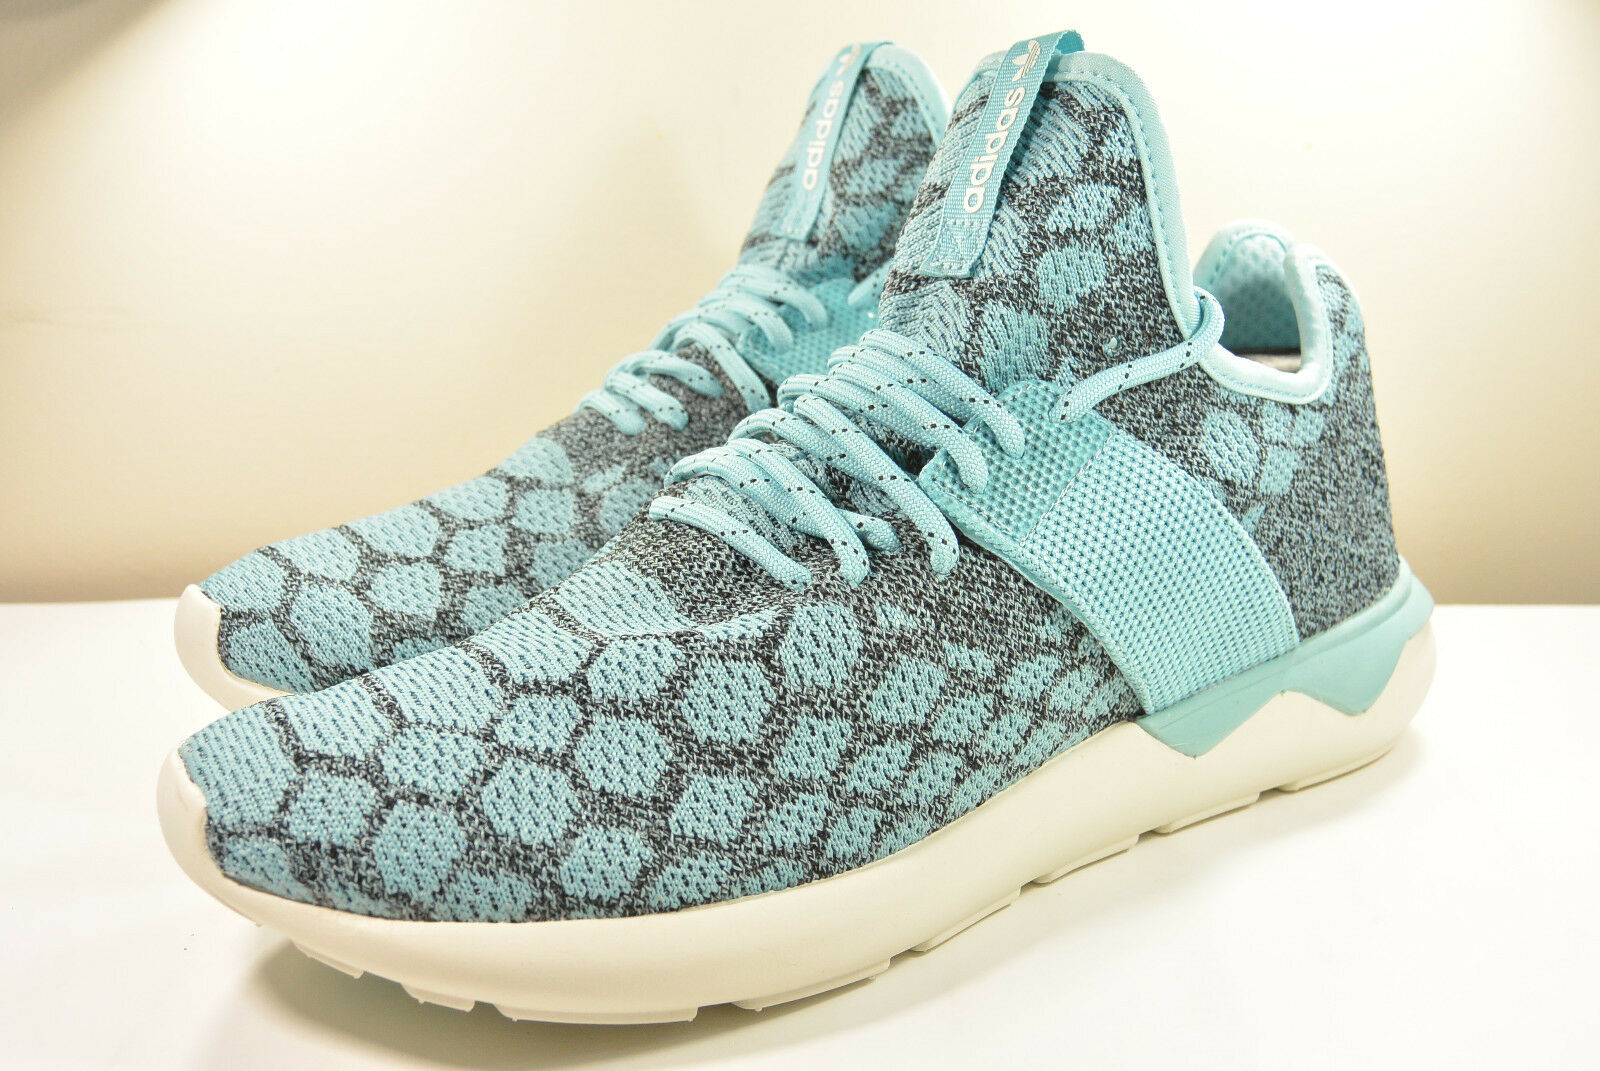 DS 2018 ADIDAS TUBULAR RUNNER PRIMEKNIT BLUE 11 UNDEFEATED RICK OWEN RAF